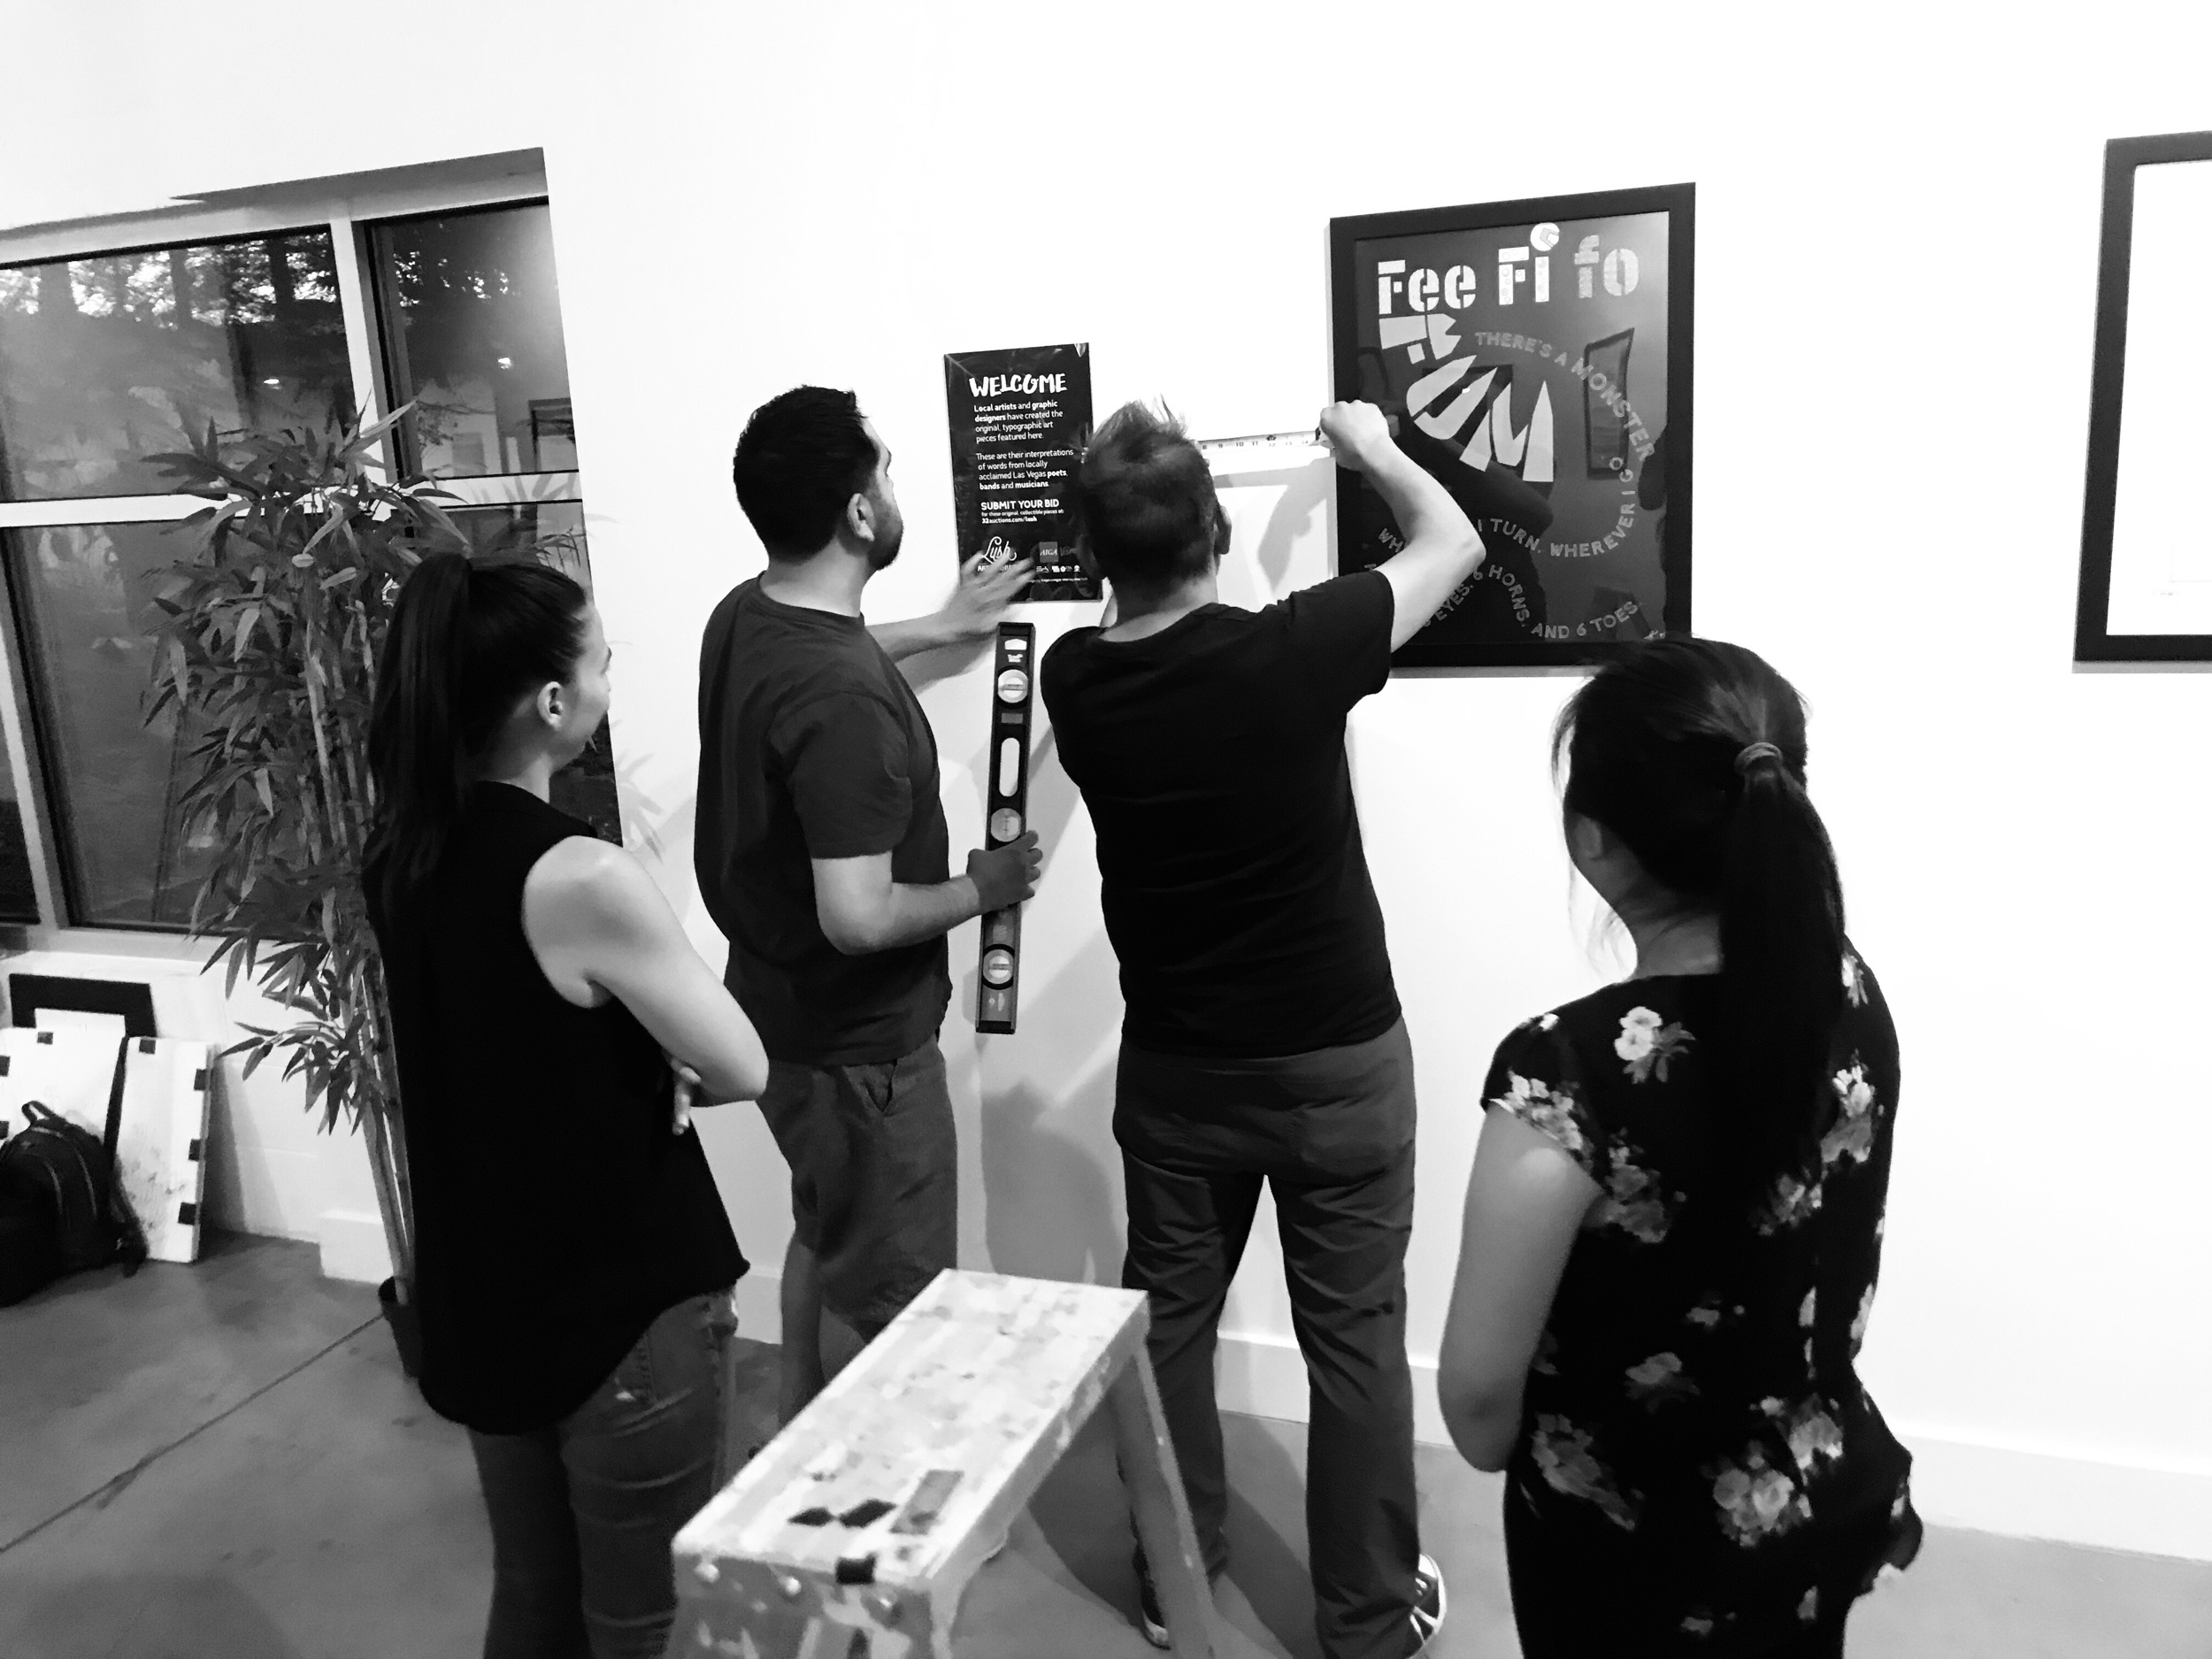 AIGA LV Board of Directors Jennie Marsh, Juan Beltran, AIGA Program Director and Editor In Chief of VIM Magazine Jorge Lara, and Therese Bautista setting up at Escape Artist Studios.